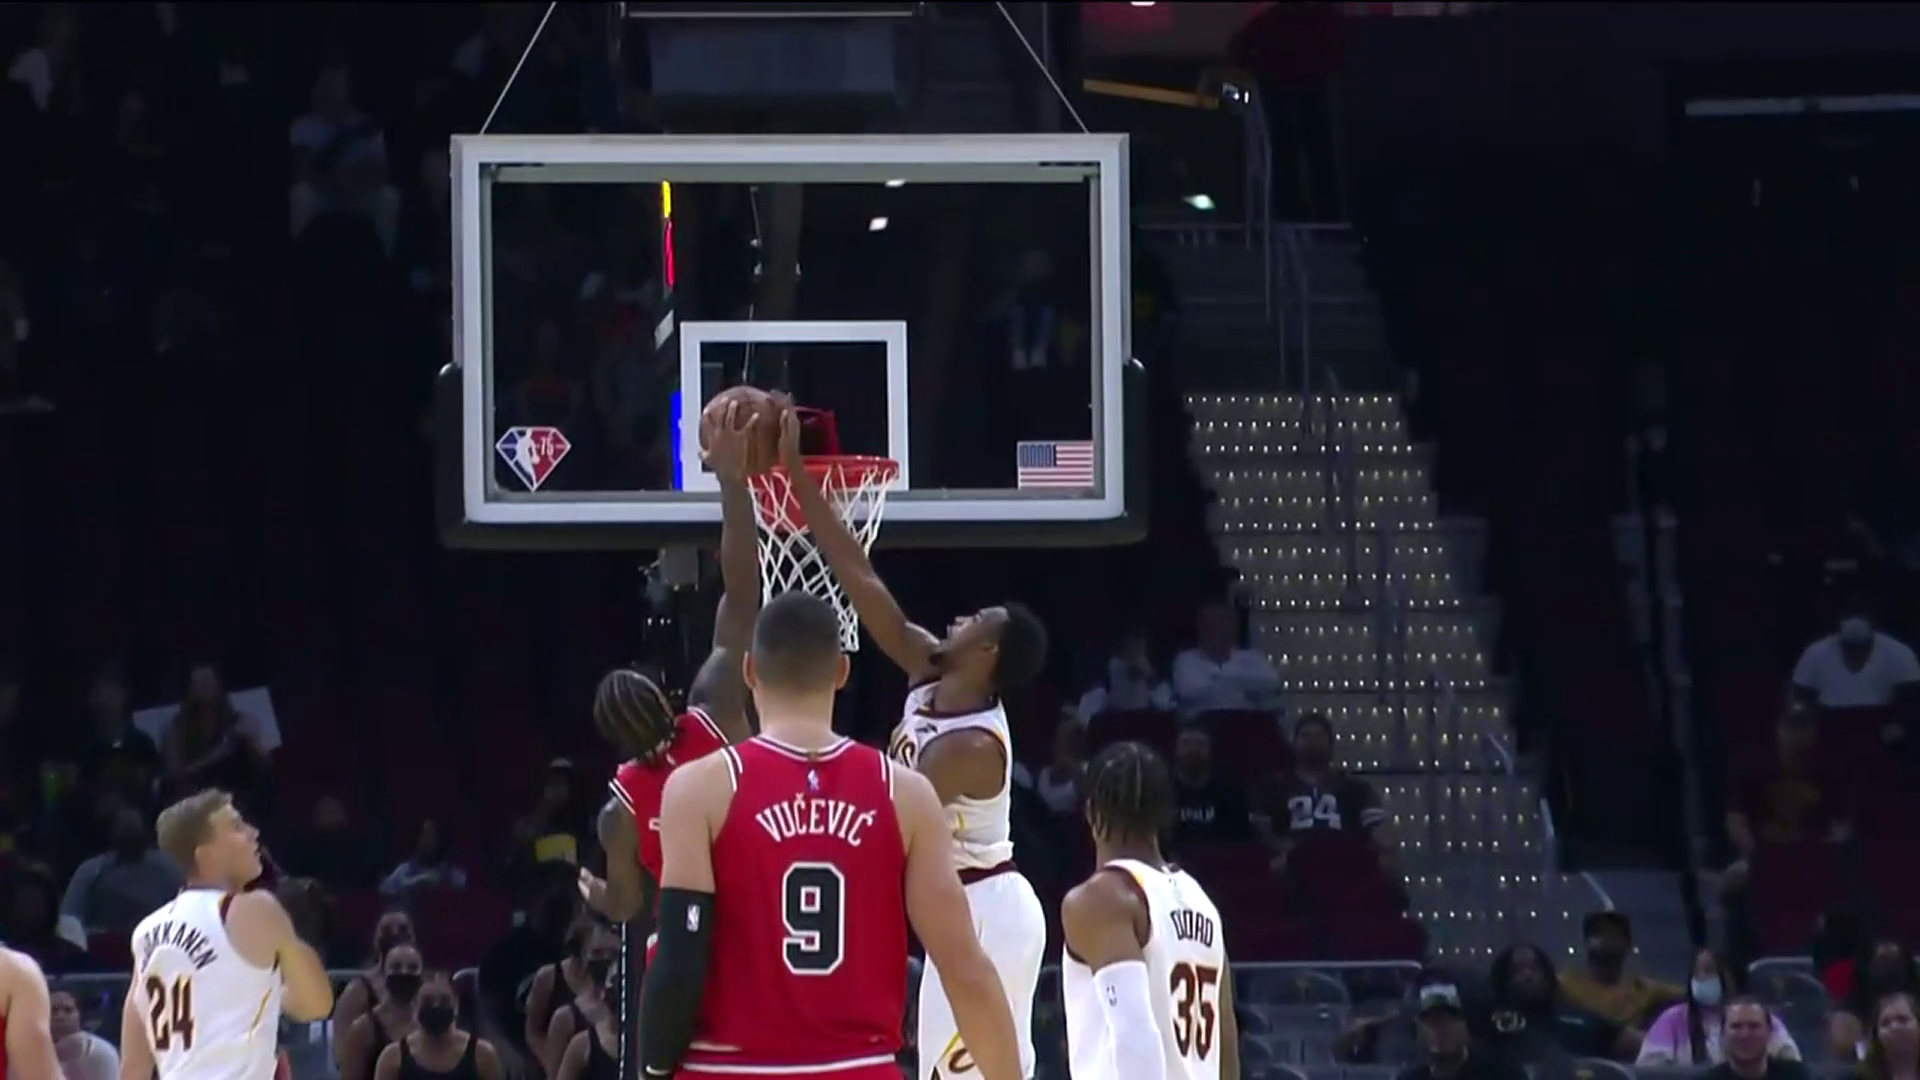 Mobley with a Huge Rejection